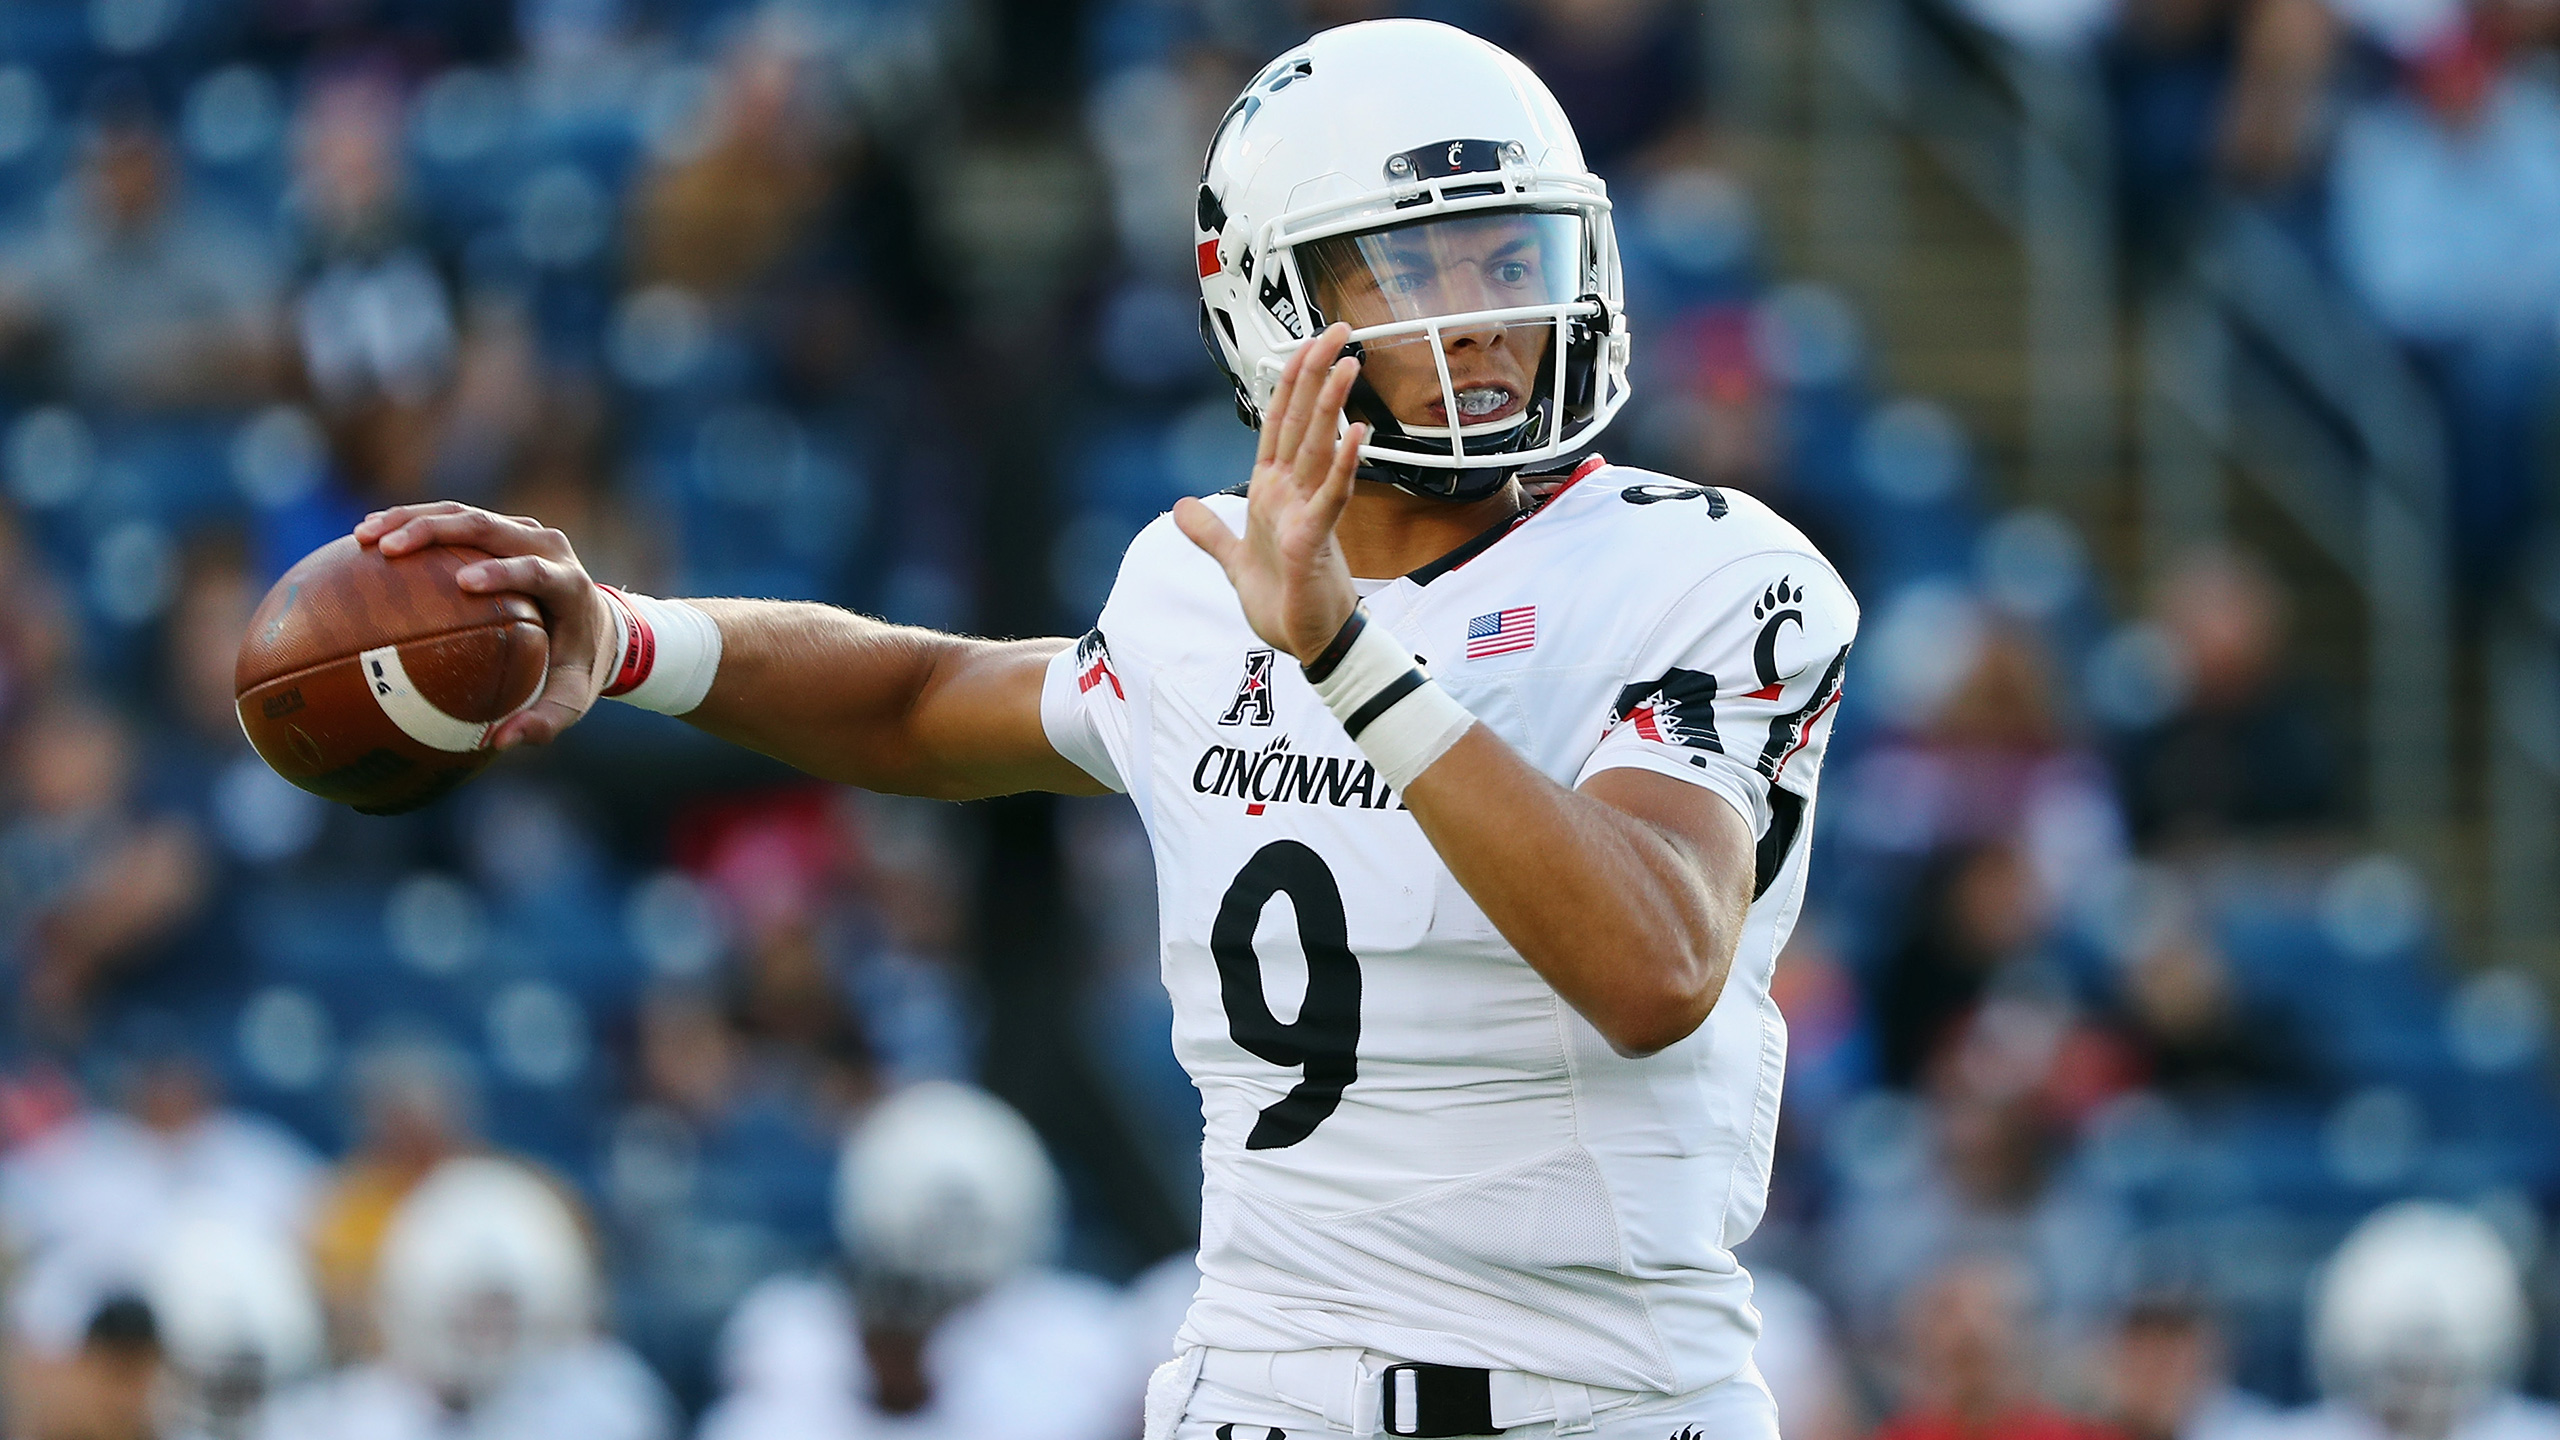 #20 Cincinnati vs. Temple (Football)